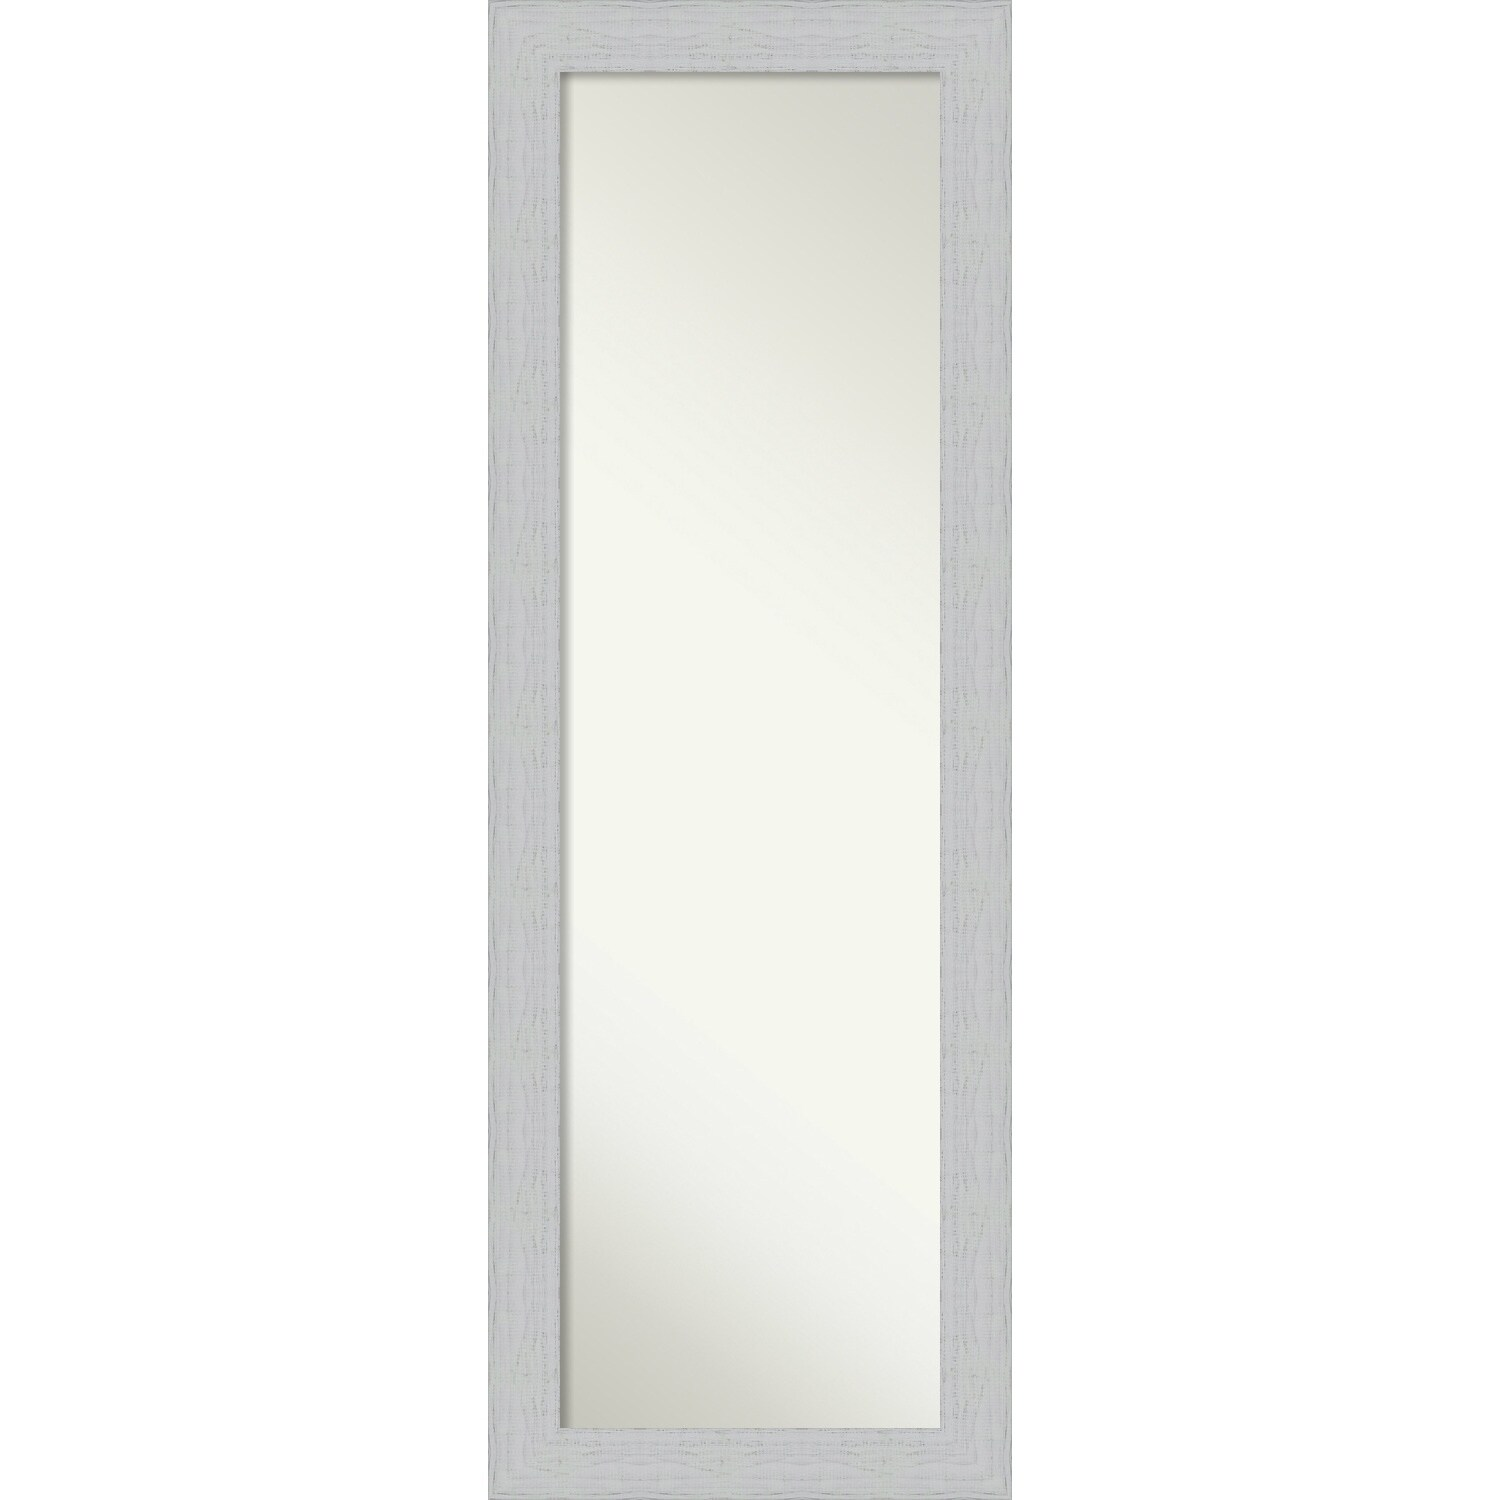 On The Door Full Length Wall Mirror Shiplap White Outer Size 18 X 52 Inch